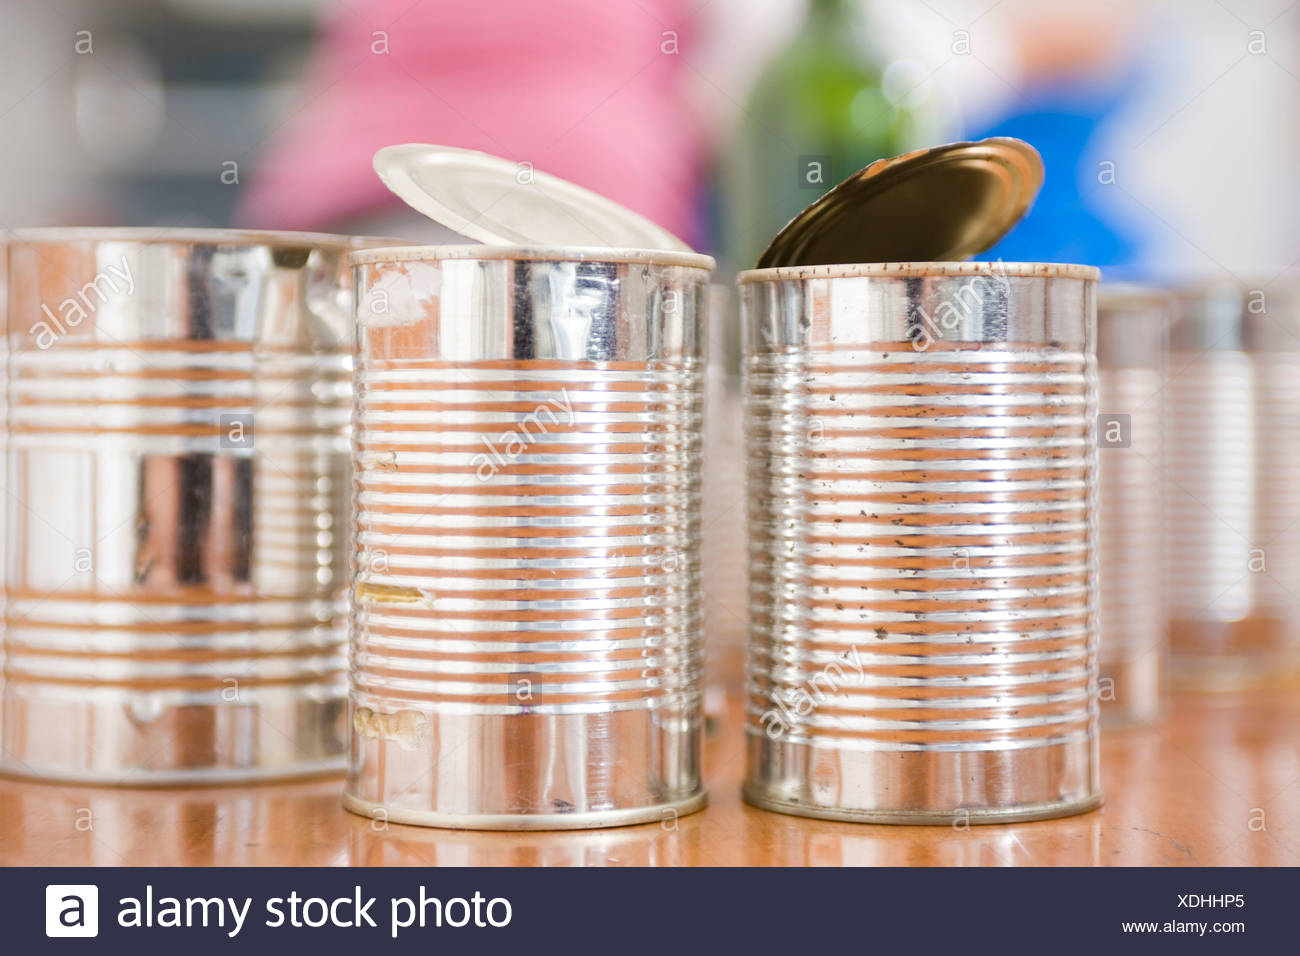 Still-life with used tins - Stock Image